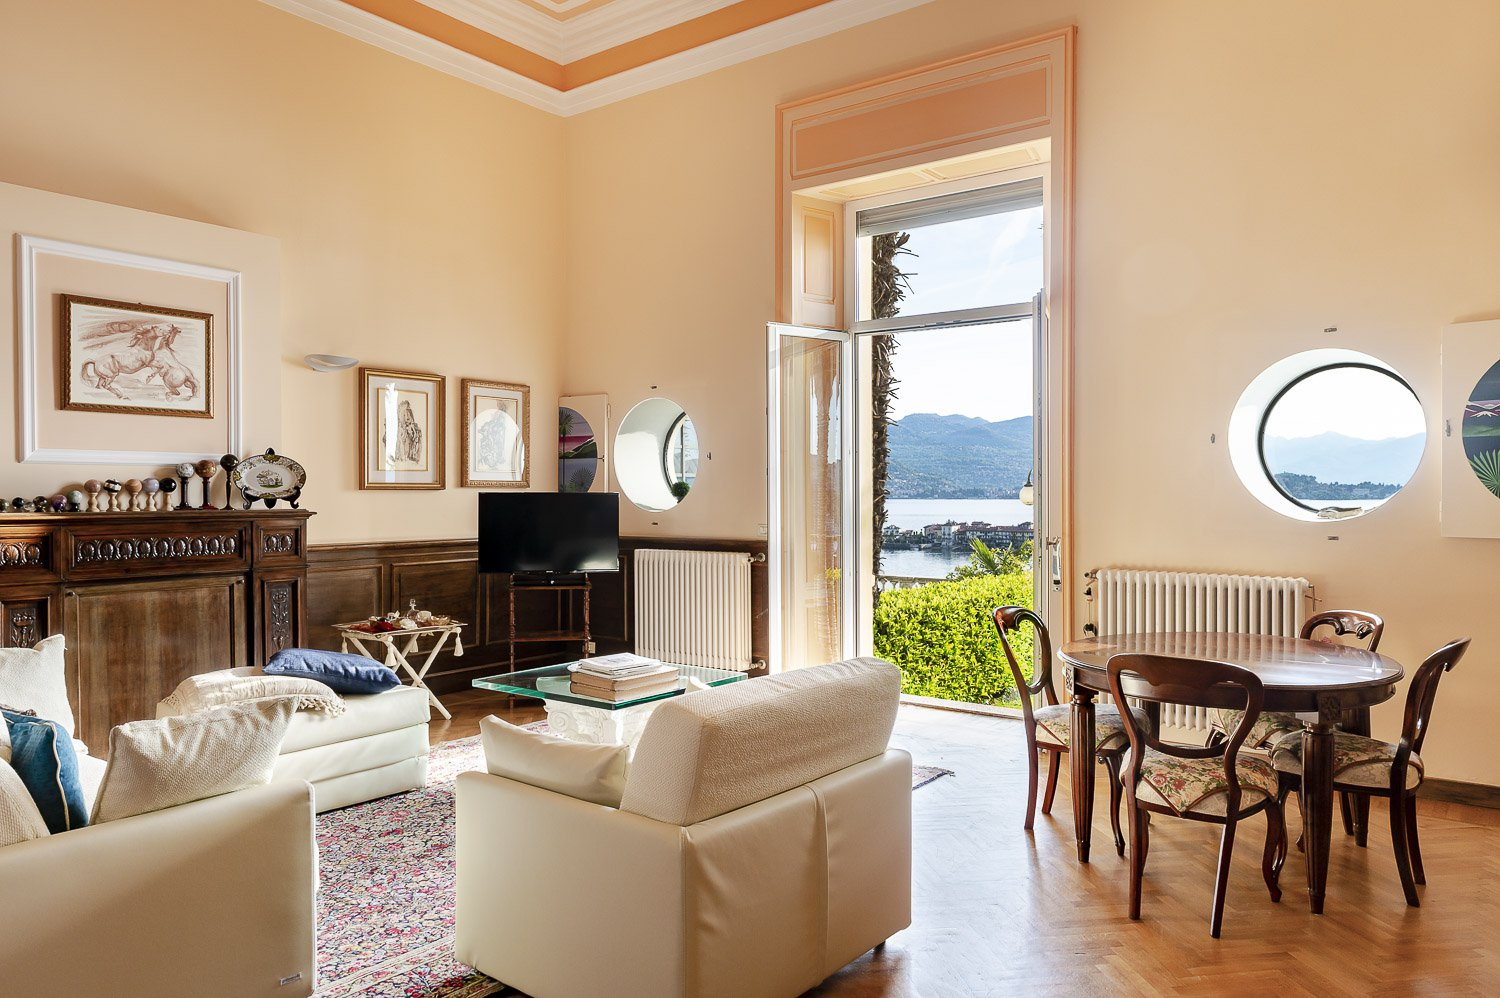 Apartment for sale in historic villa in Baveno - living room